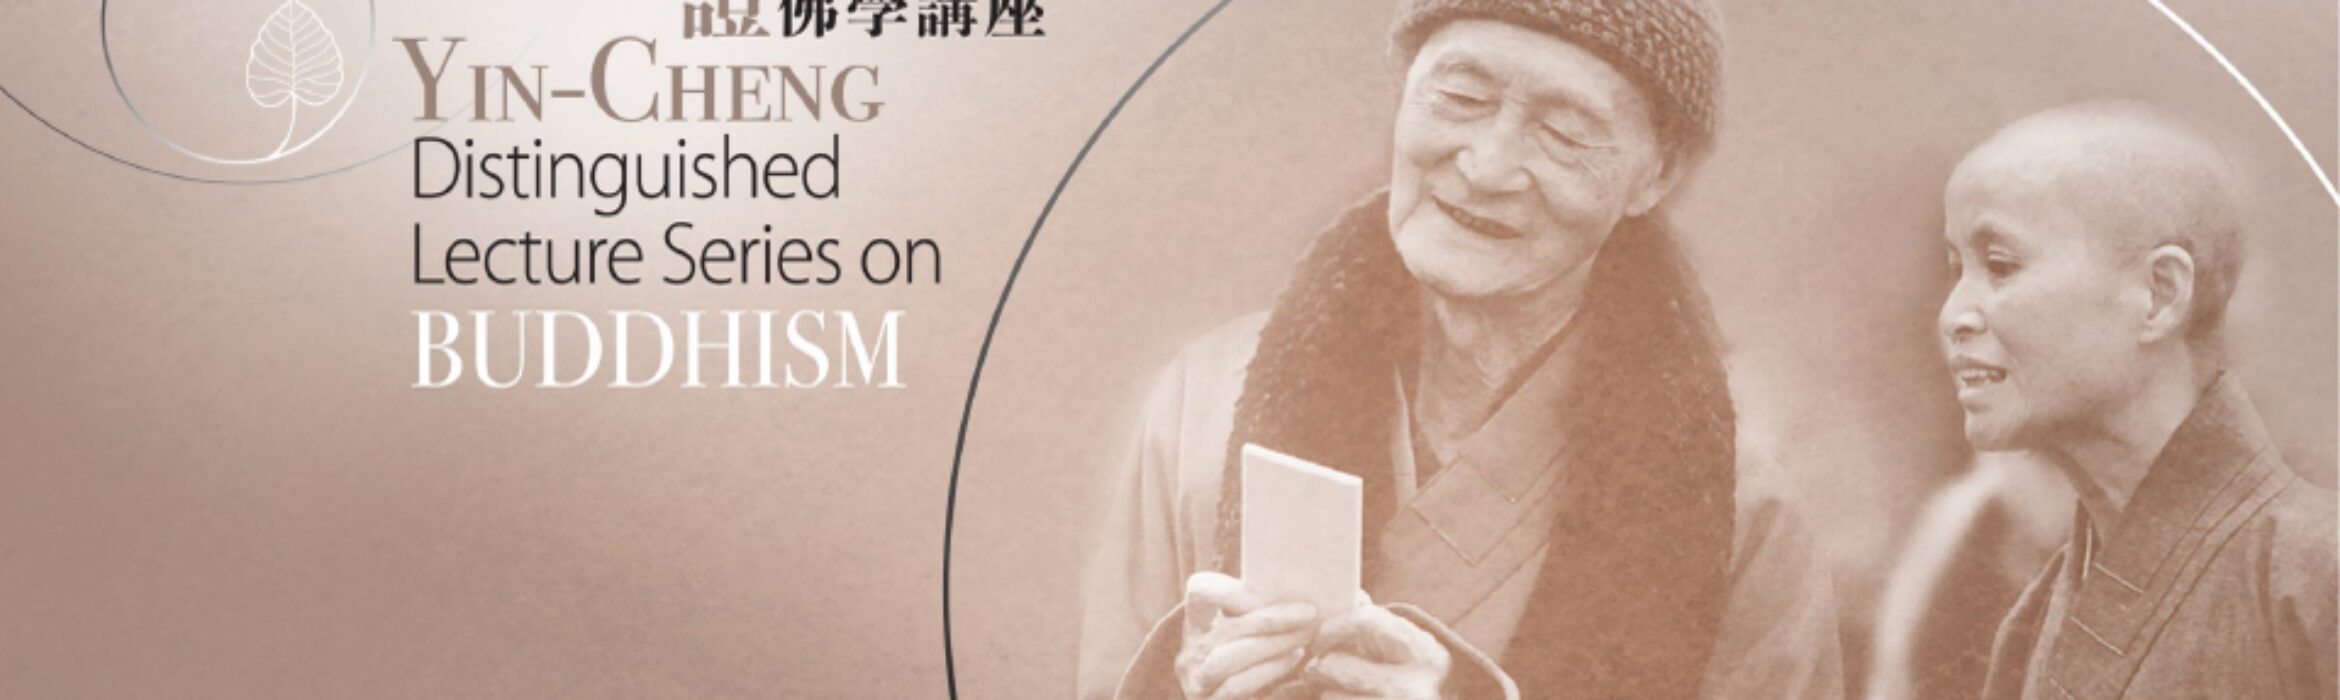 Announcement: Yin-Cheng Distinguished Lecture Series (印證佛學傑出學術系列講座)